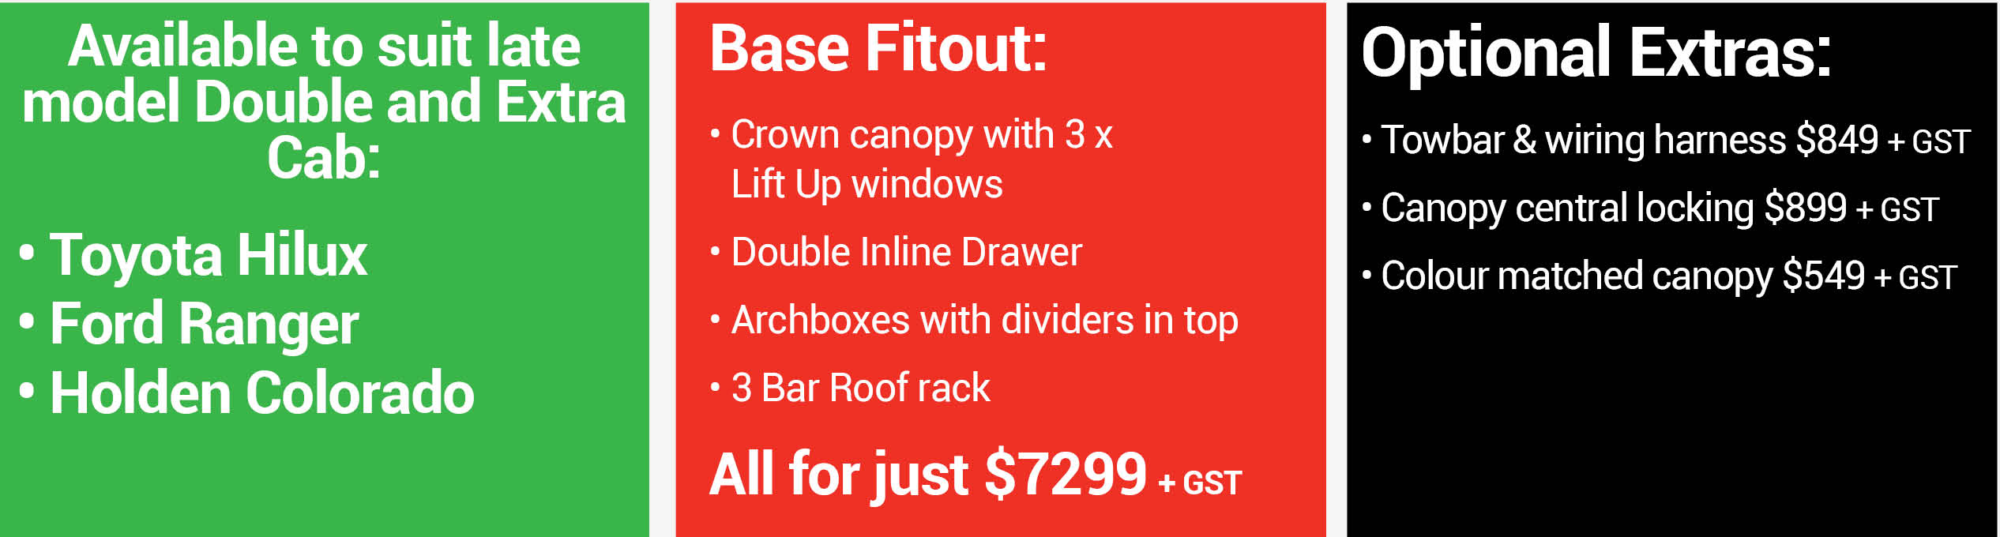 CamcoTrade Ute Fitout